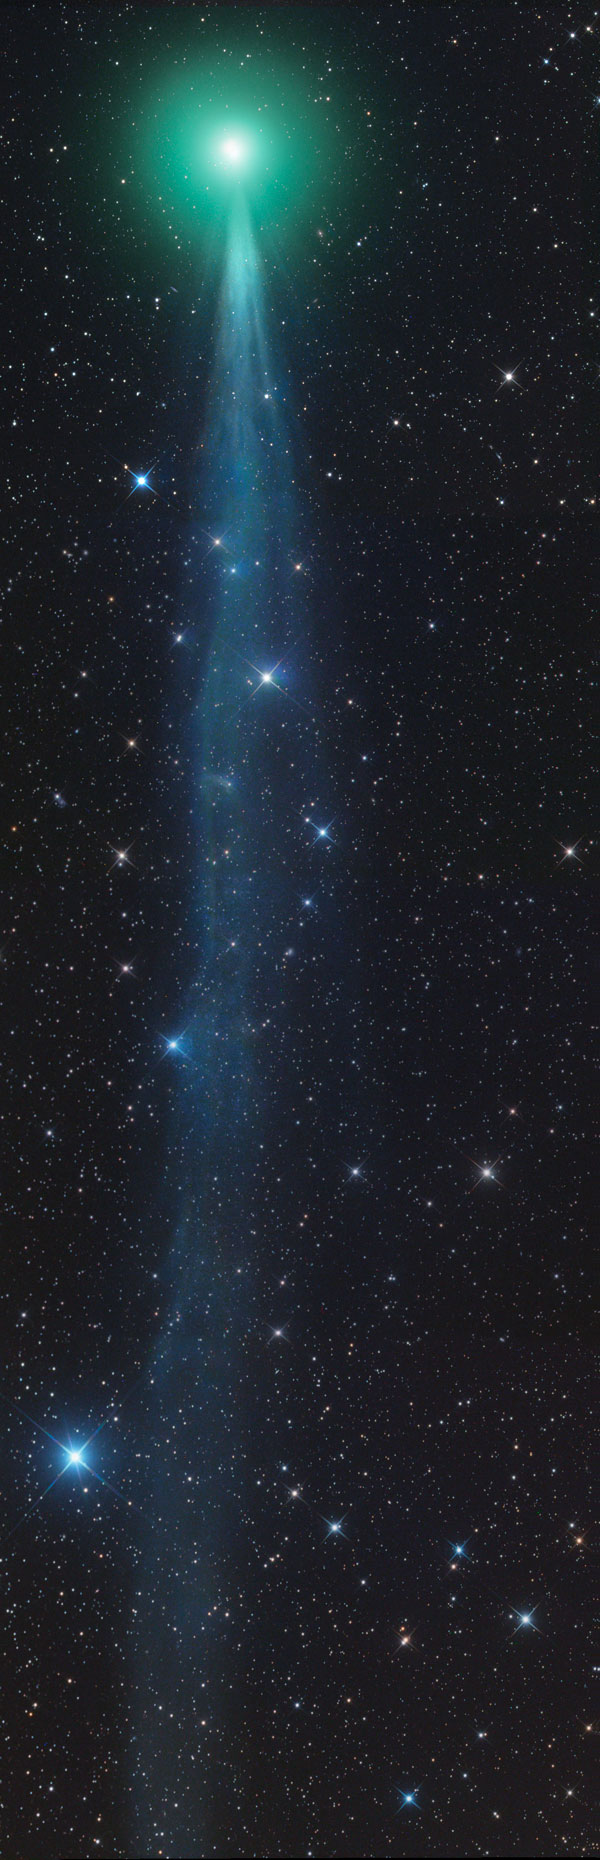 New Comet Lovejoy reaches peak viewing time St George News